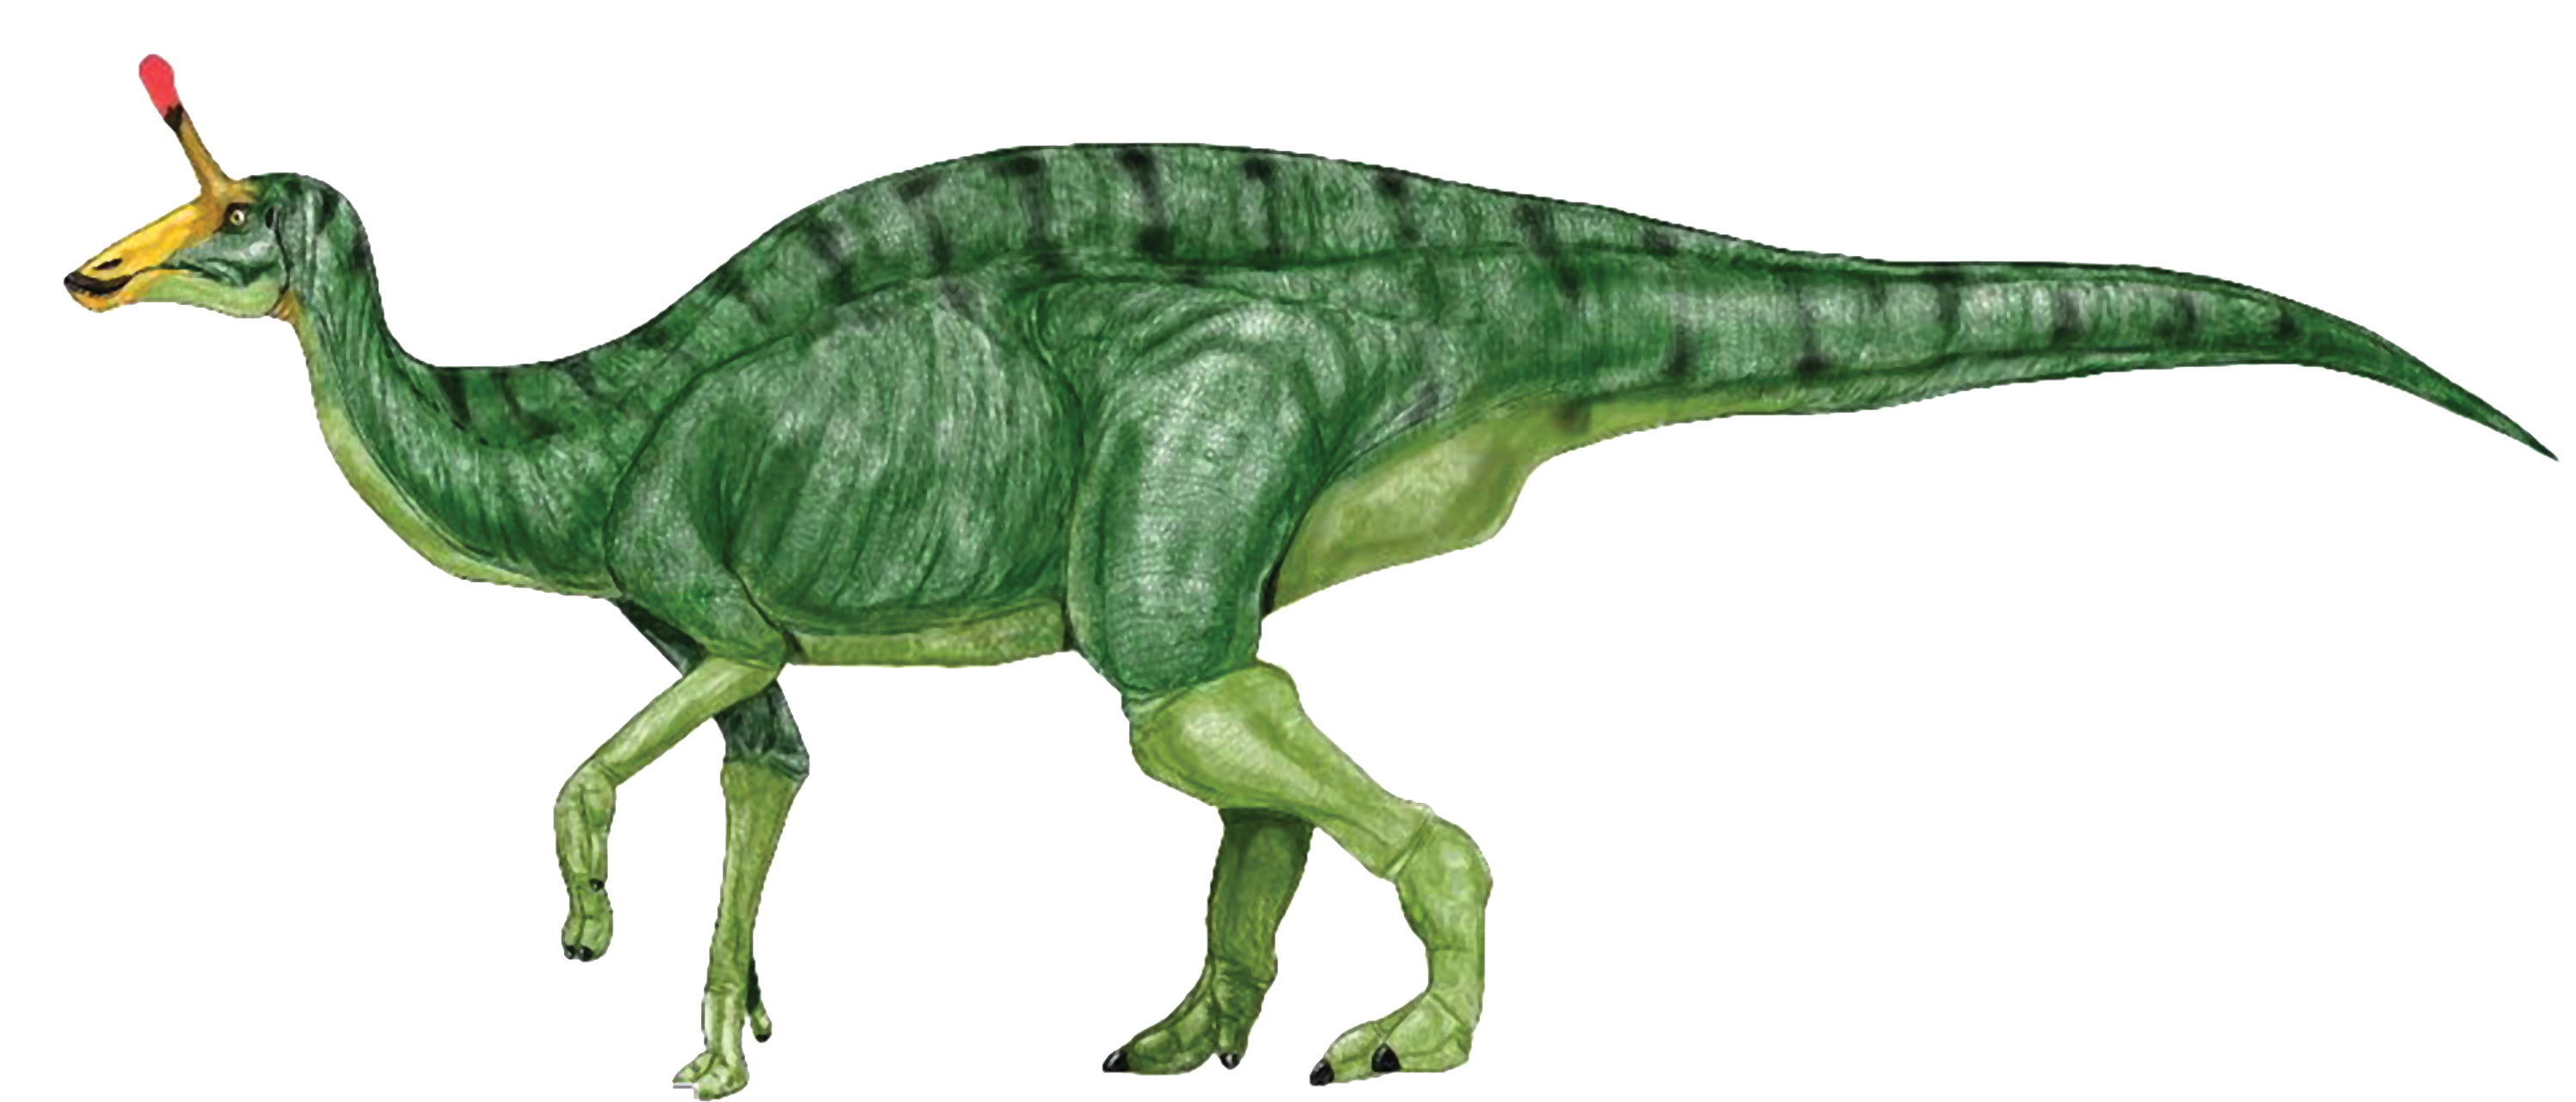 Dinosaur clipart water. Google search dinosaurs silhouettes